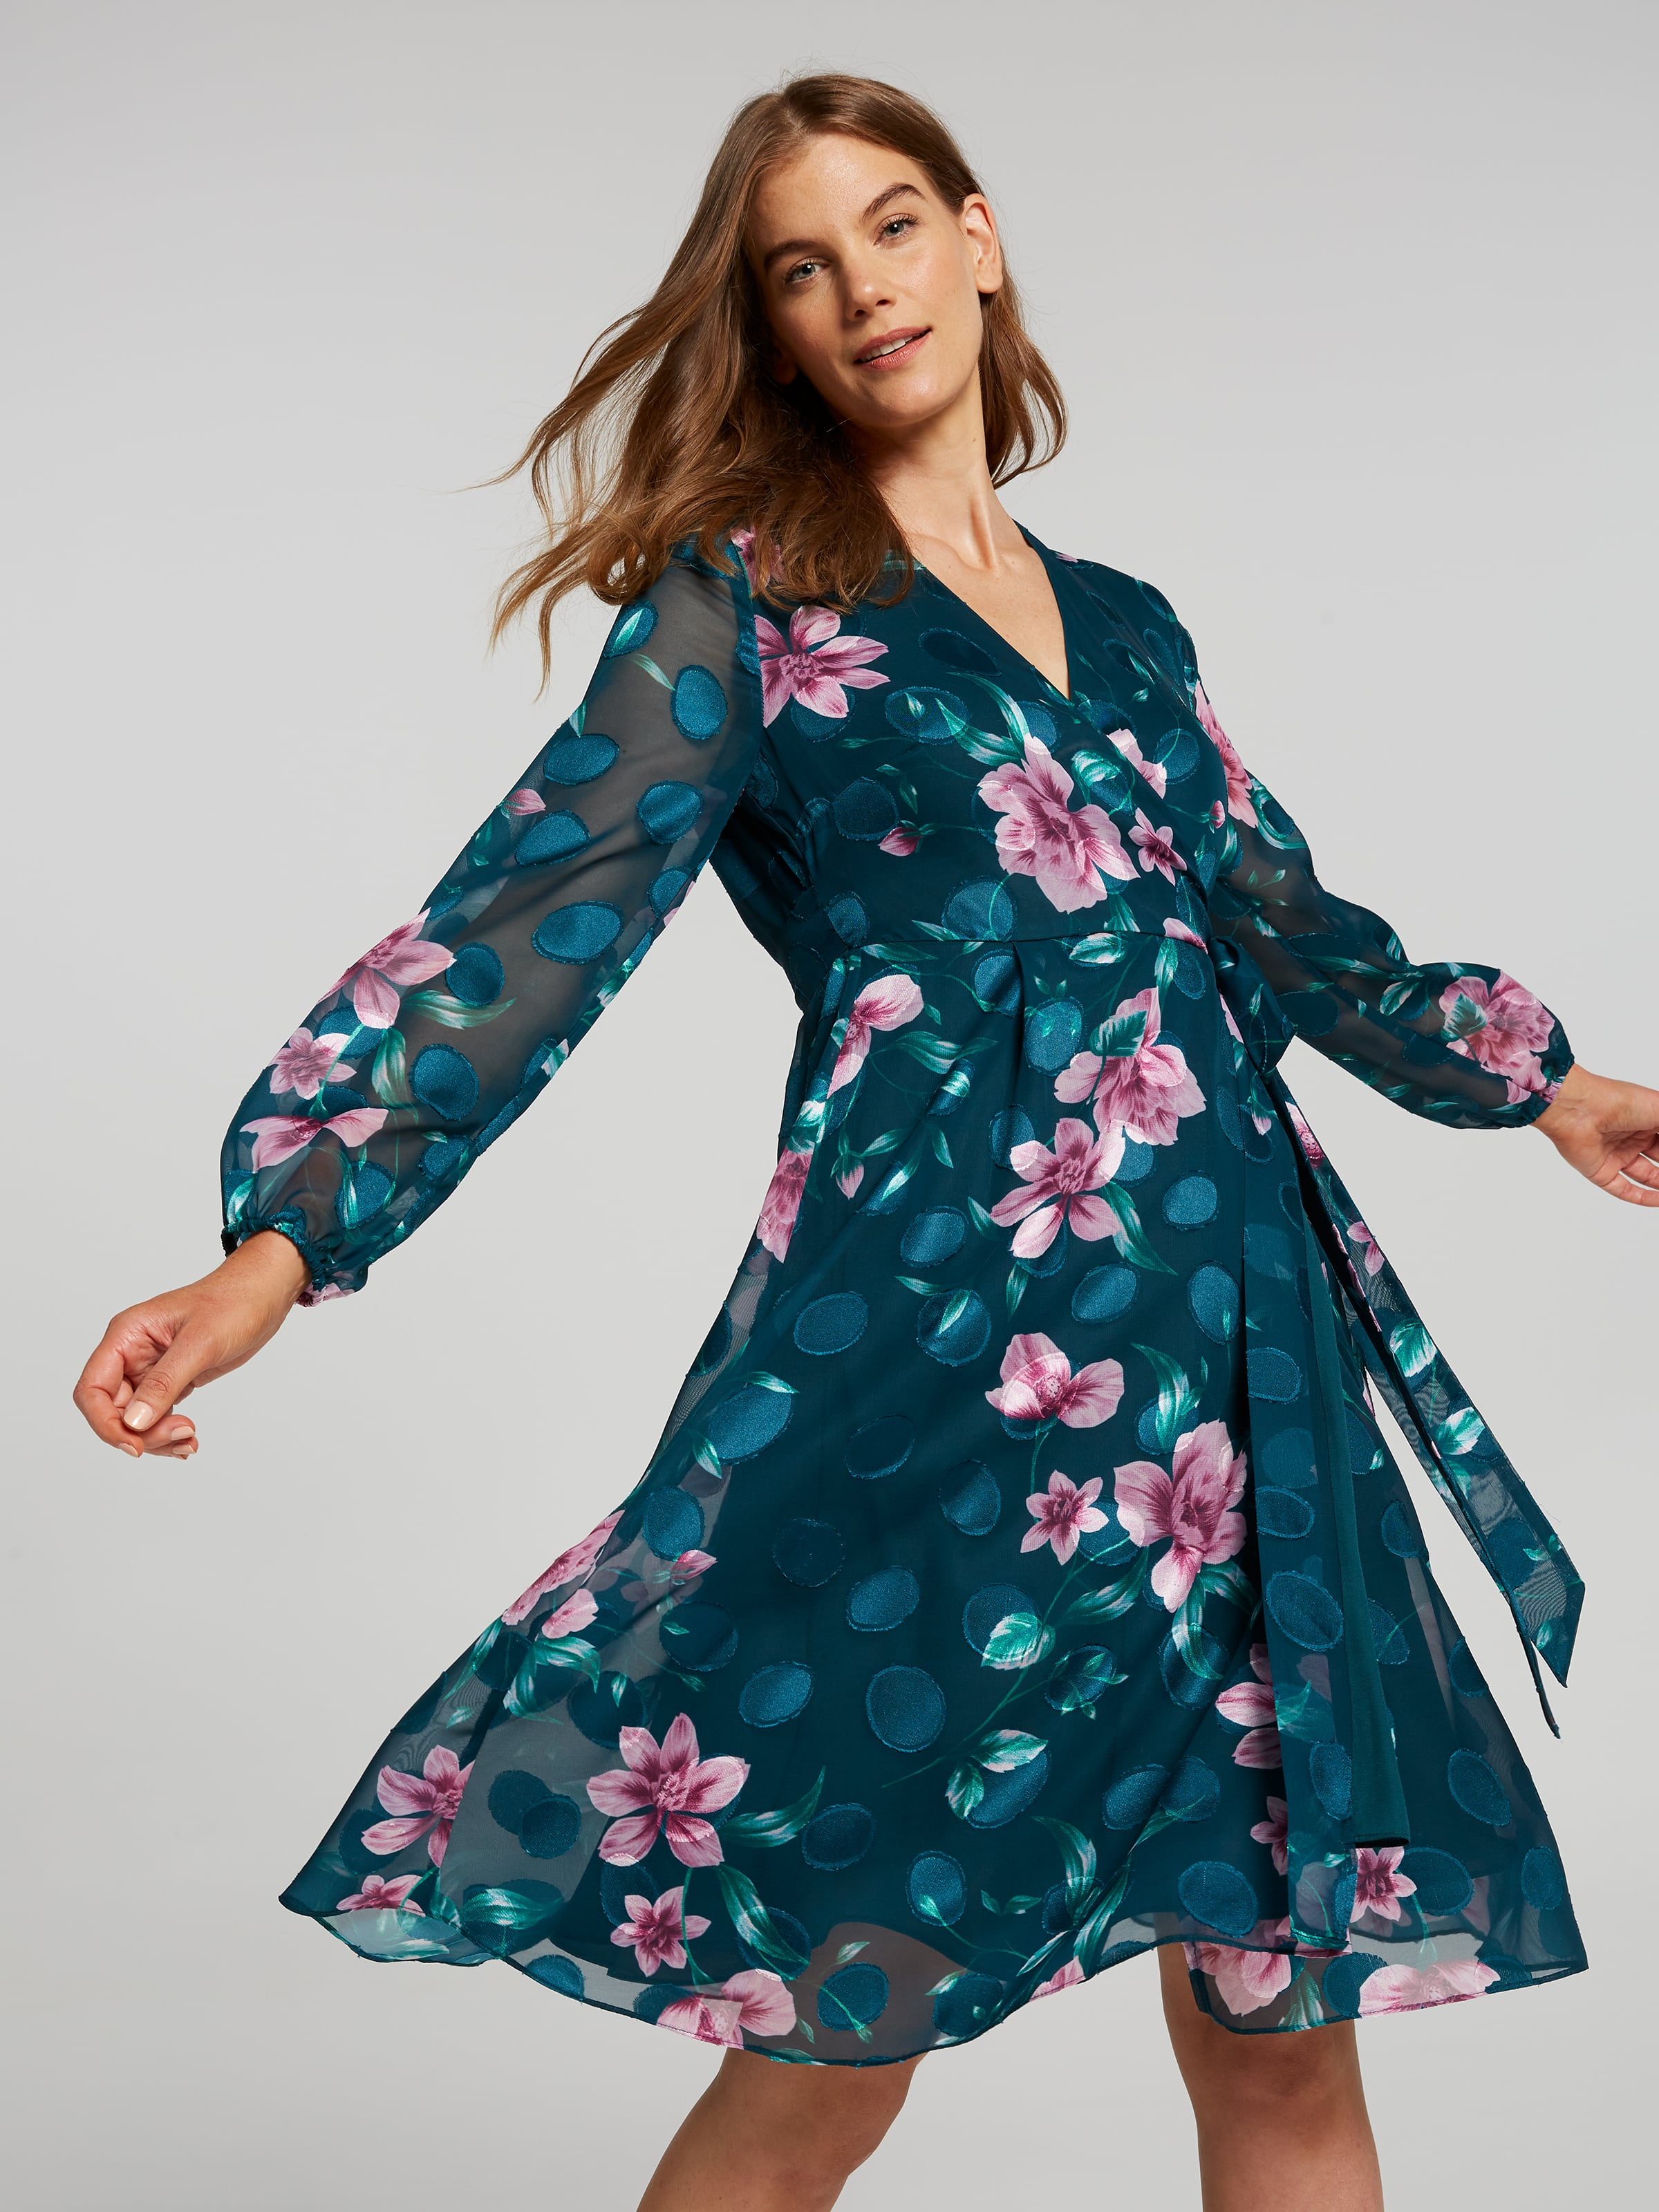 Image of Jacqui E Australia Jacqui E 3/4 Sleeve Clara Jacquard Wrap Dress